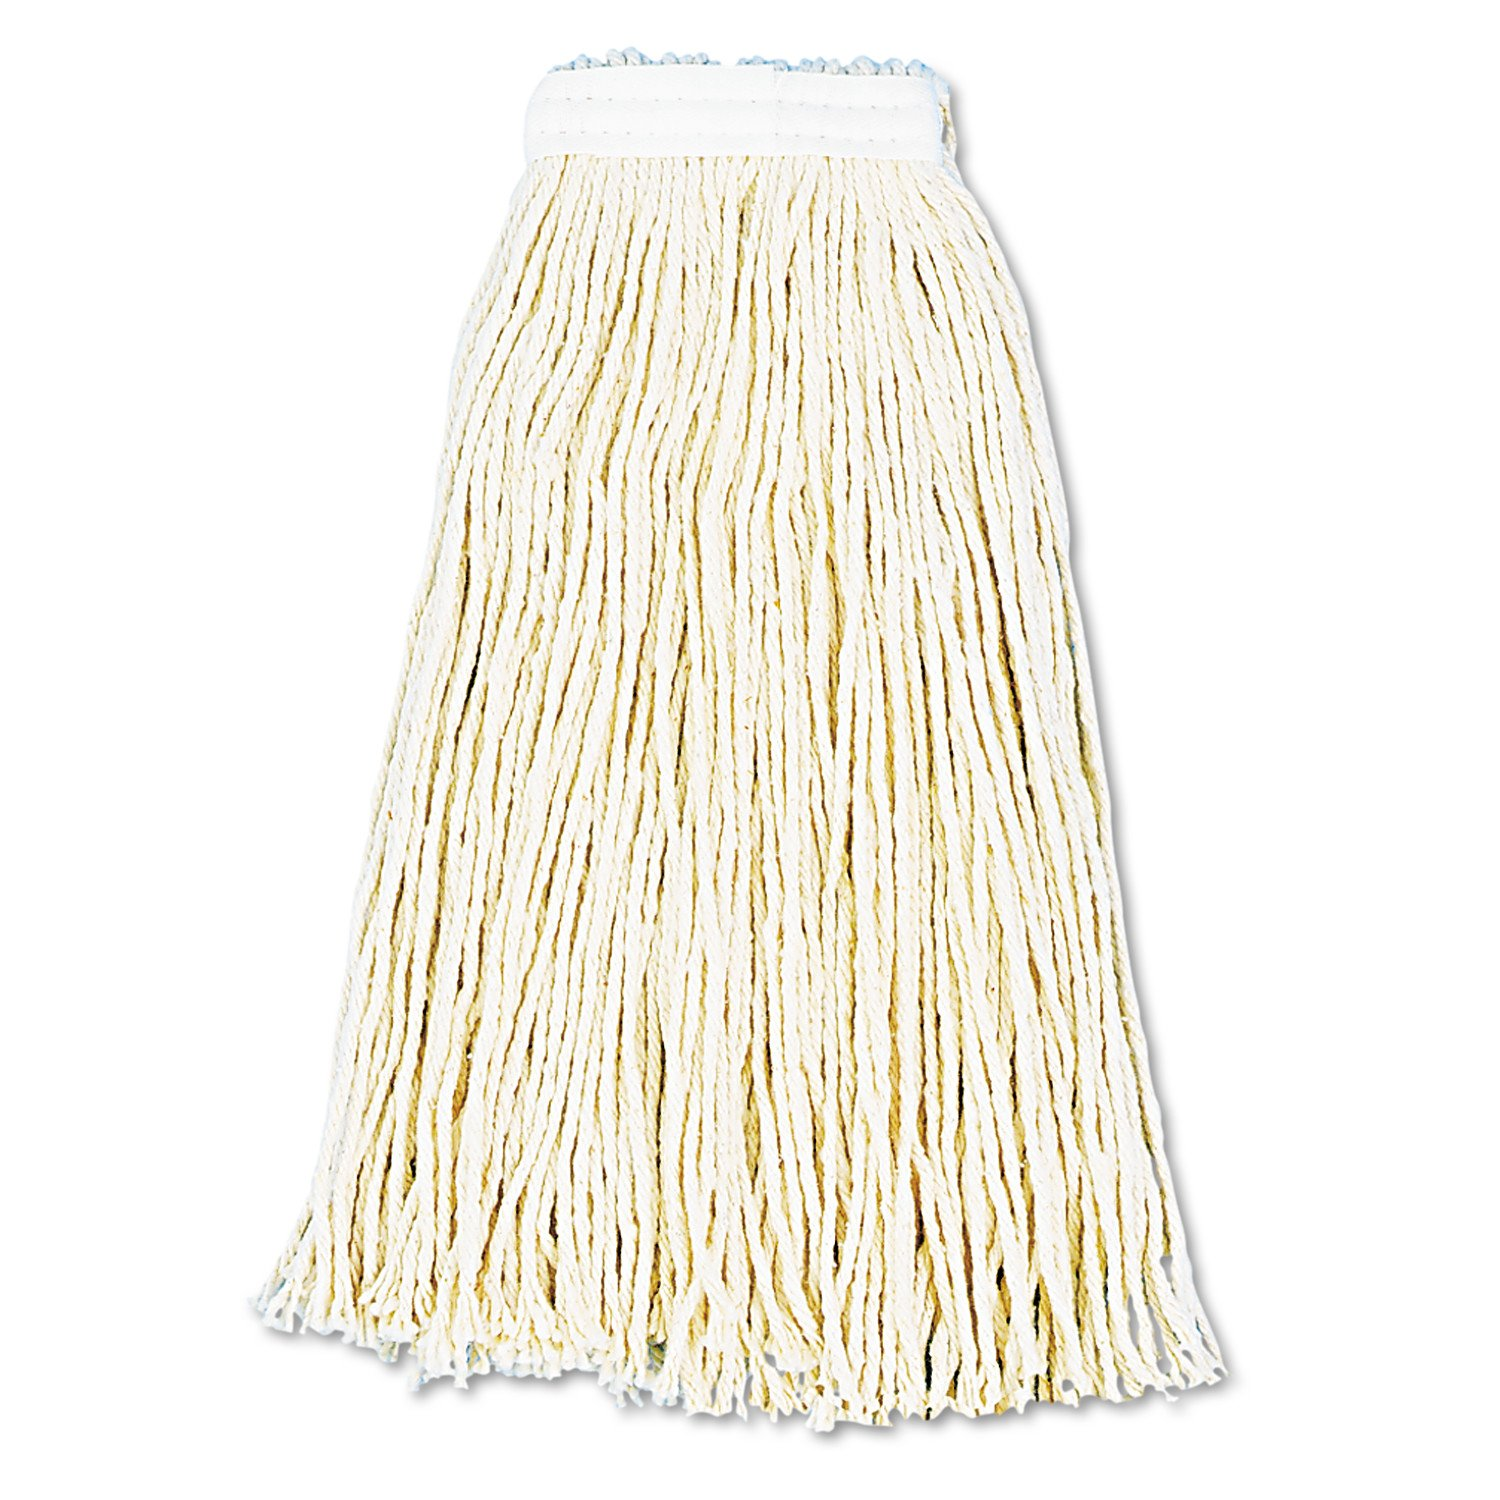 Boardwalk 216CCT Premium Cut-End Wet Mop Heads, Cotton, 16oz, White (Case of 12)